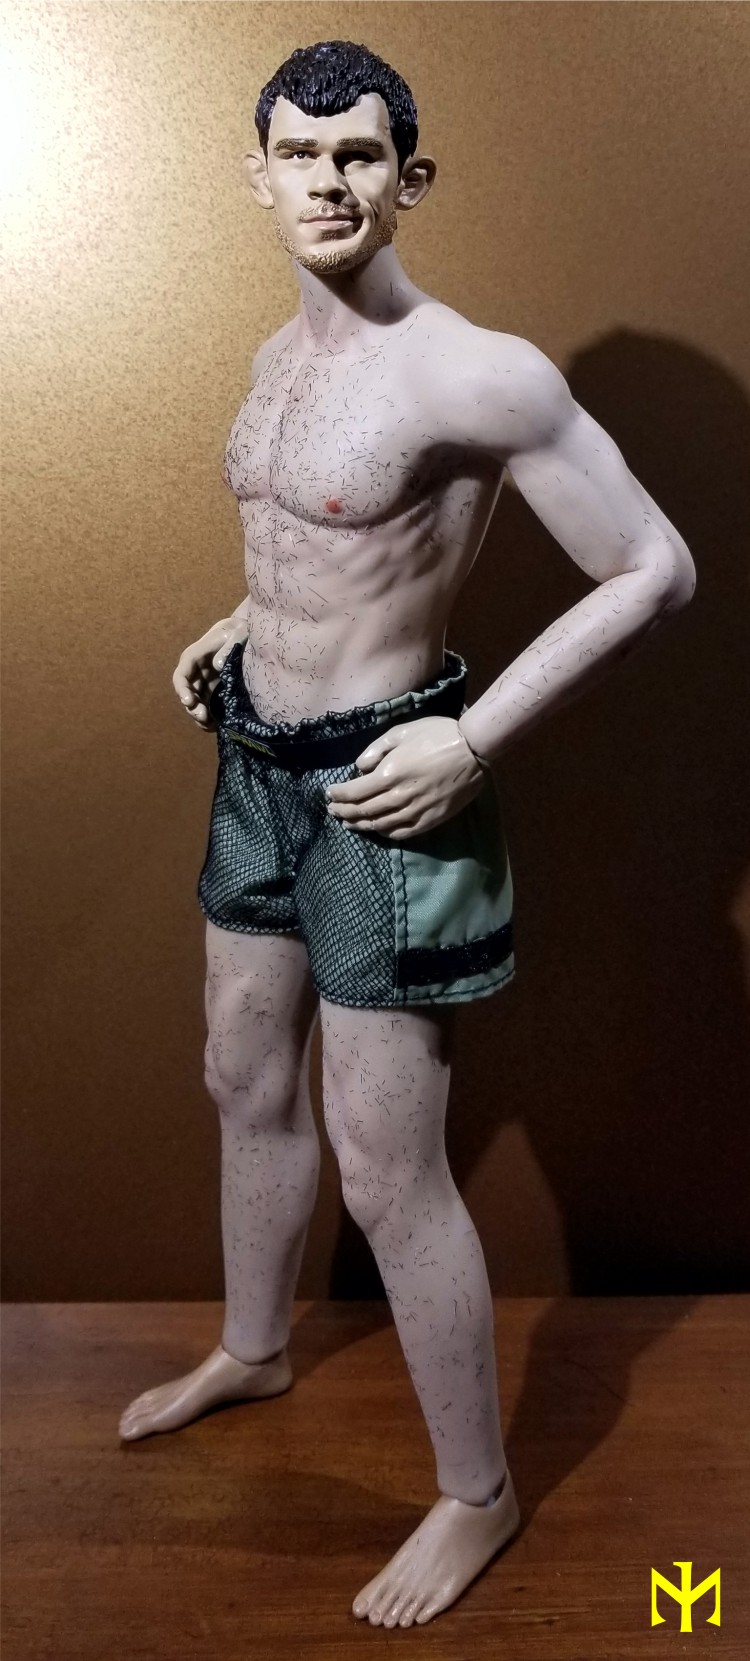 ufc - Kitbash UFC Champion Forrest Griffin Forgri14